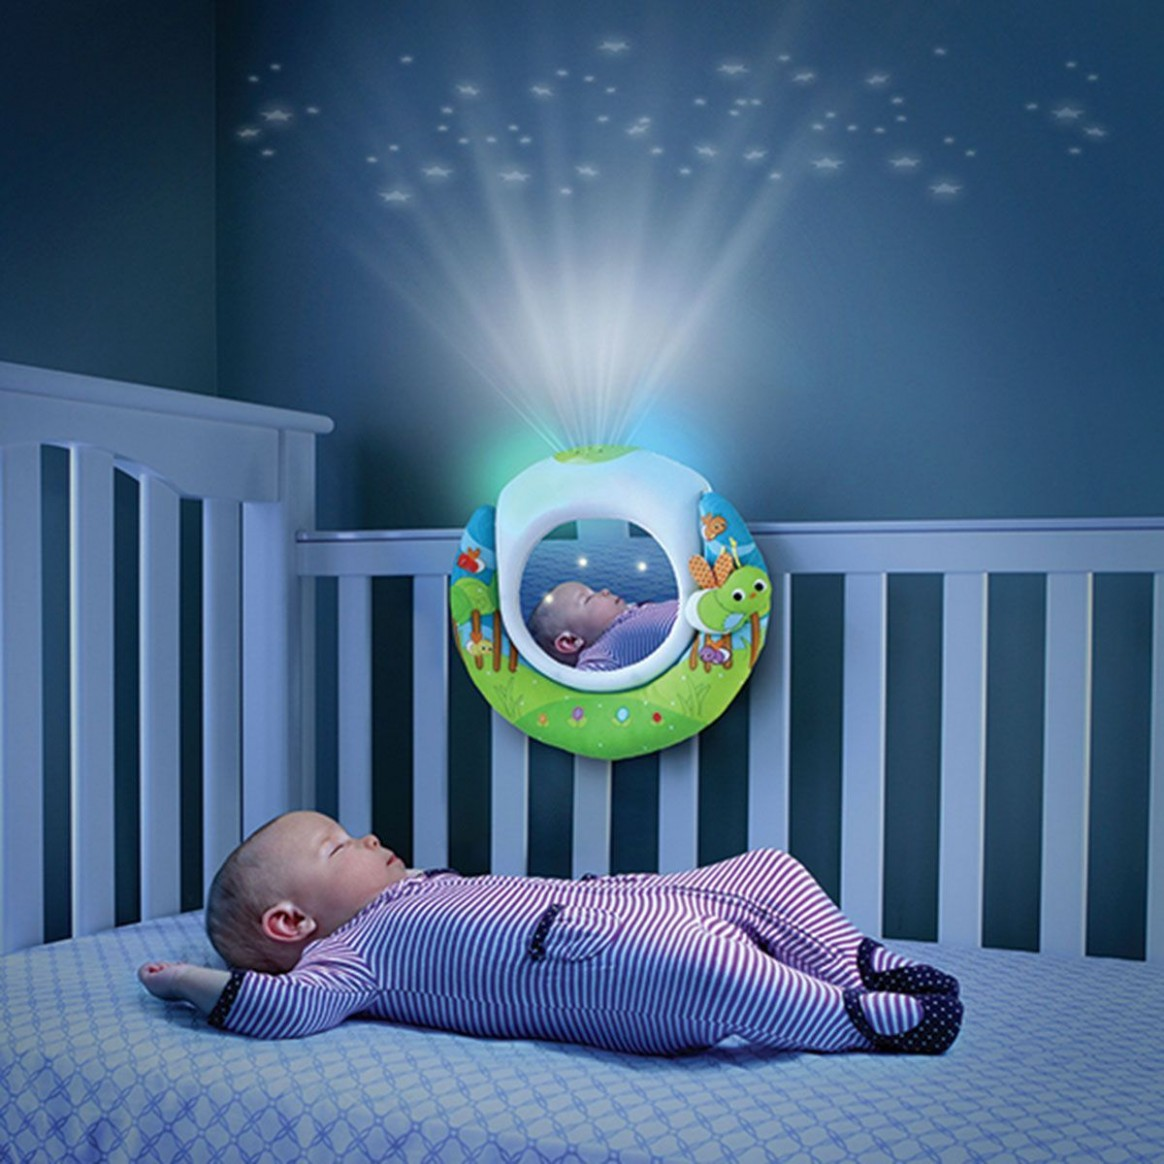 12+ Baby Room Projector Light - Best Spray Paint for Wood  - Baby Room Projector